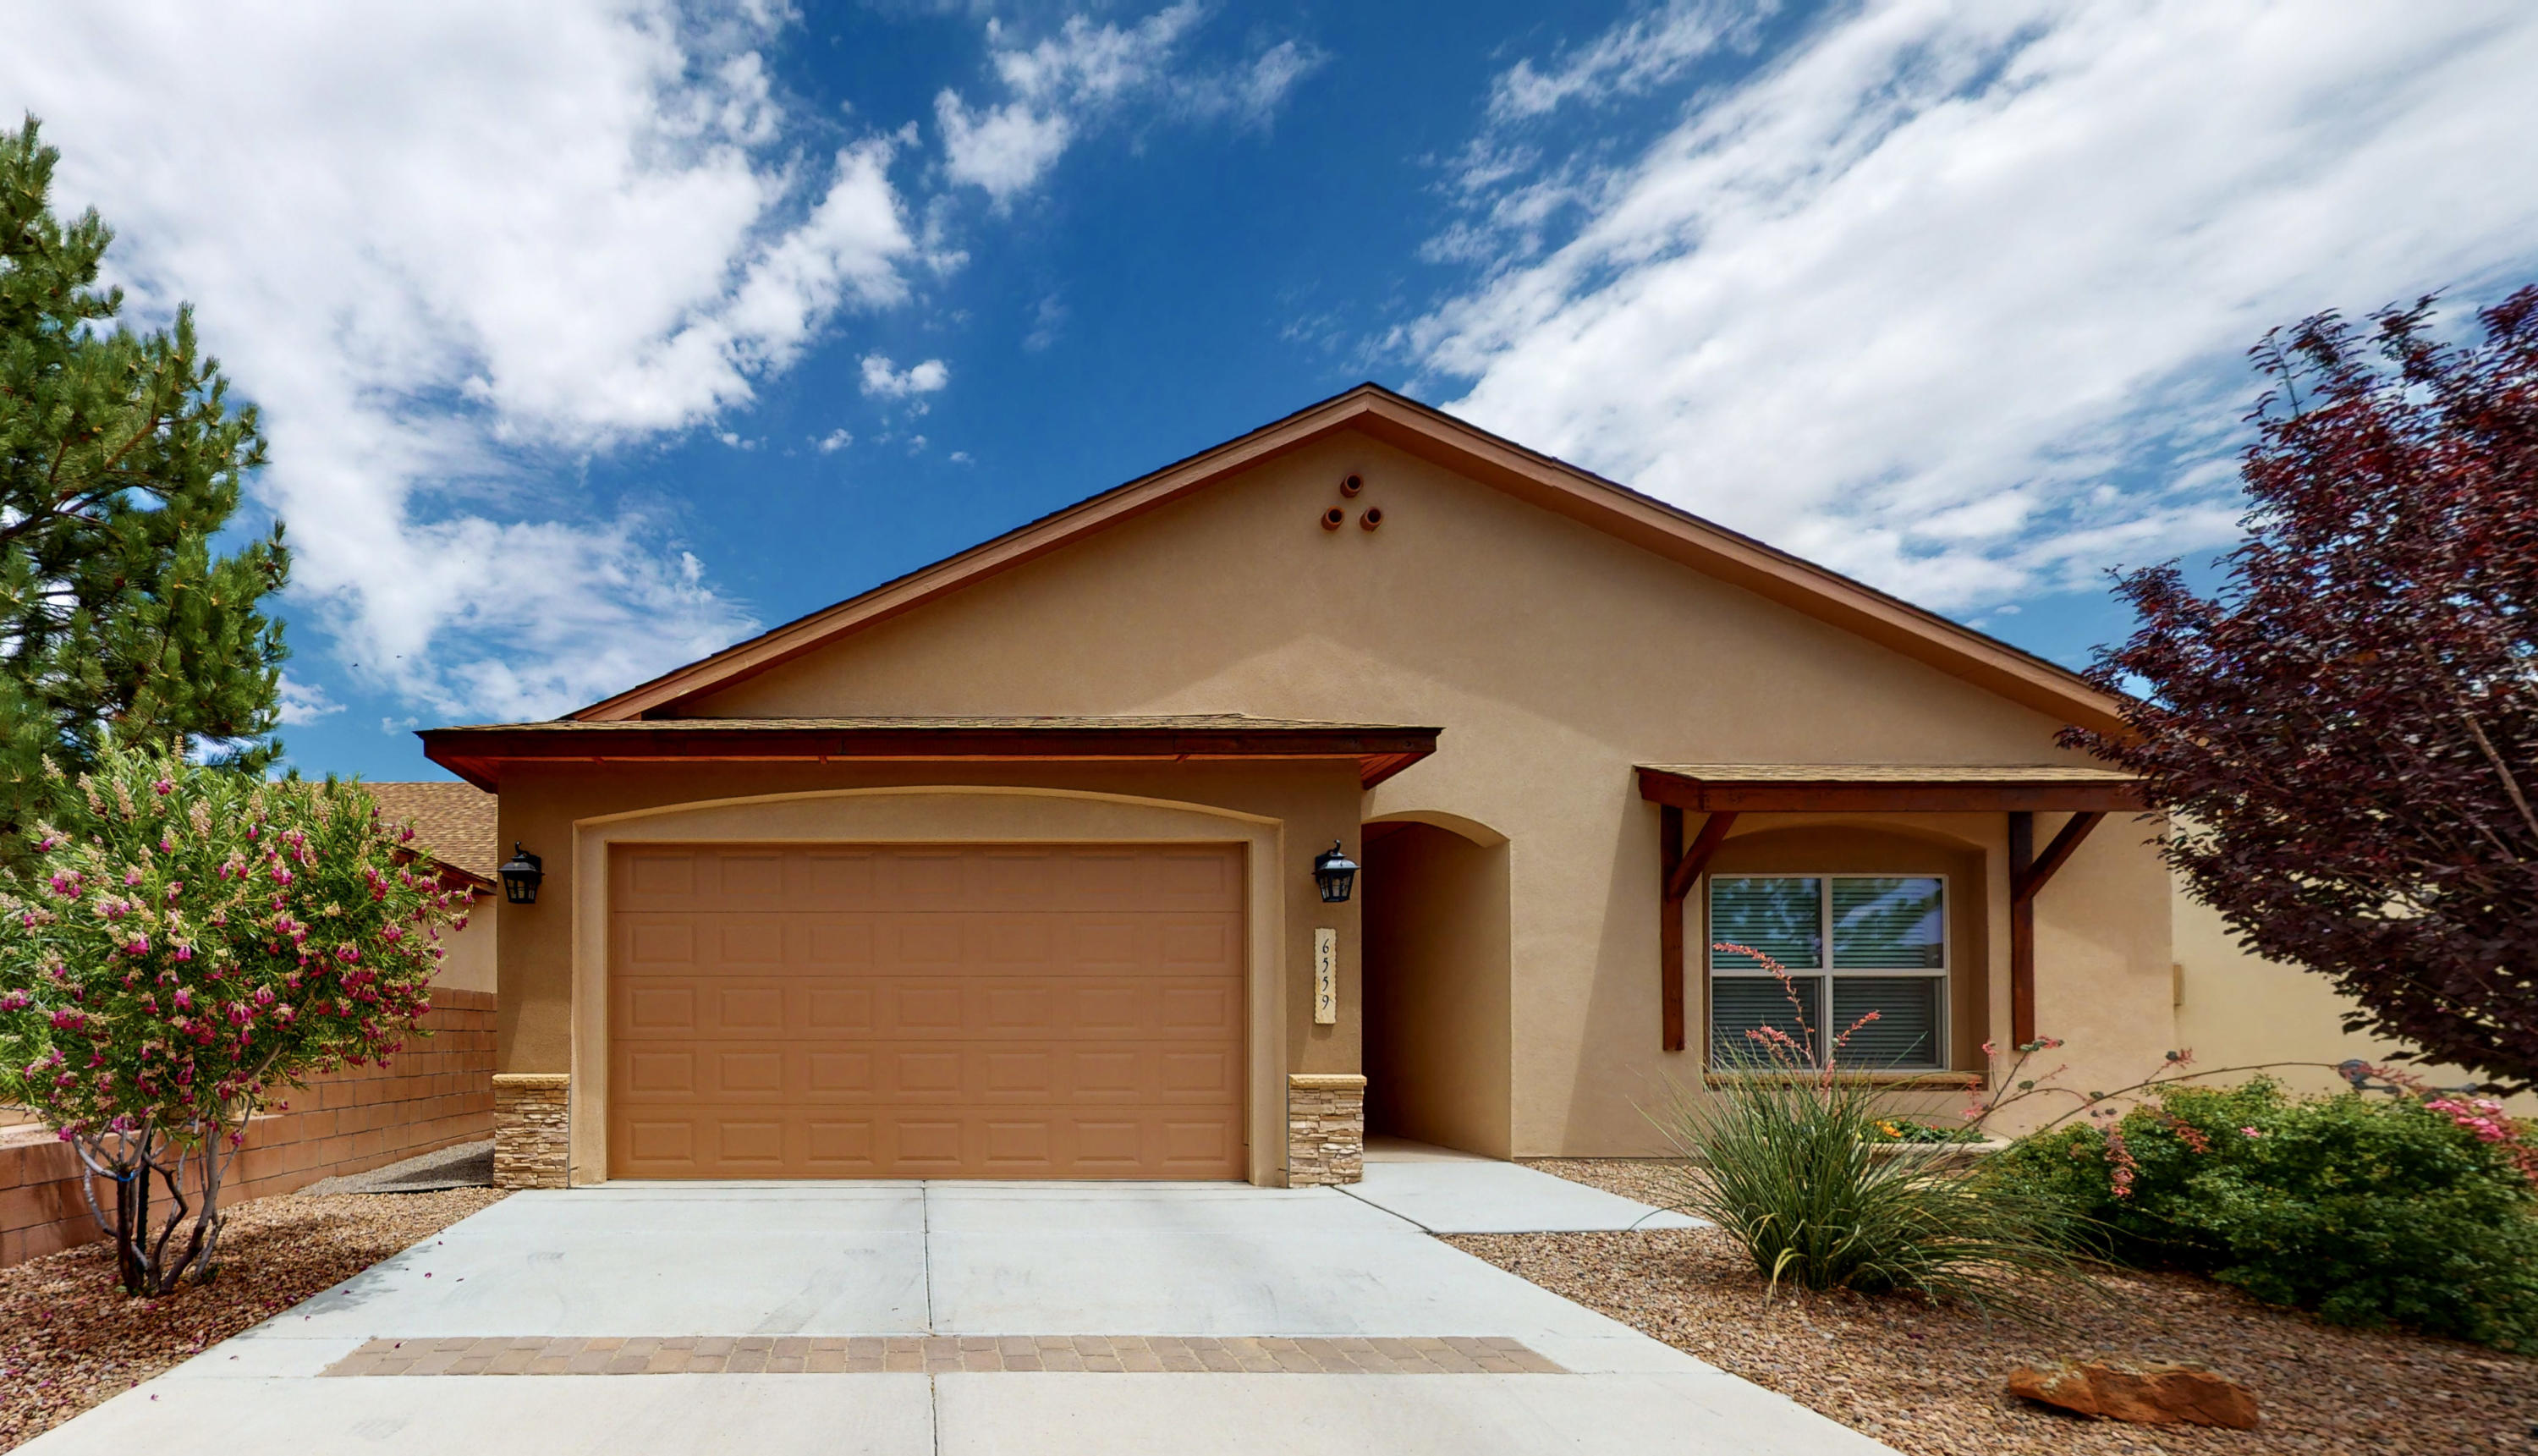 Welcome to this Move-in Ready, 1-Owner, 2015-Built, Single Story Paul Allen Home in Saltillo! Situated on a Quiet Cul-de-sac, 6559 Jazmin Place Northwest offers an Open Floor Plan, *Refrigerated Air*, 3 Bedrooms, and 2 Full Baths! The Kitchen features Granite Counters, Travertine + Glass Backsplash, and Breakfast Bar. Your Master Suite features Custom Tile, Garden Tub, and Walk-in Closet. Fully Landscaped and Walled Backyard with no neighbors behind you. Make an appointment to see this Home today!